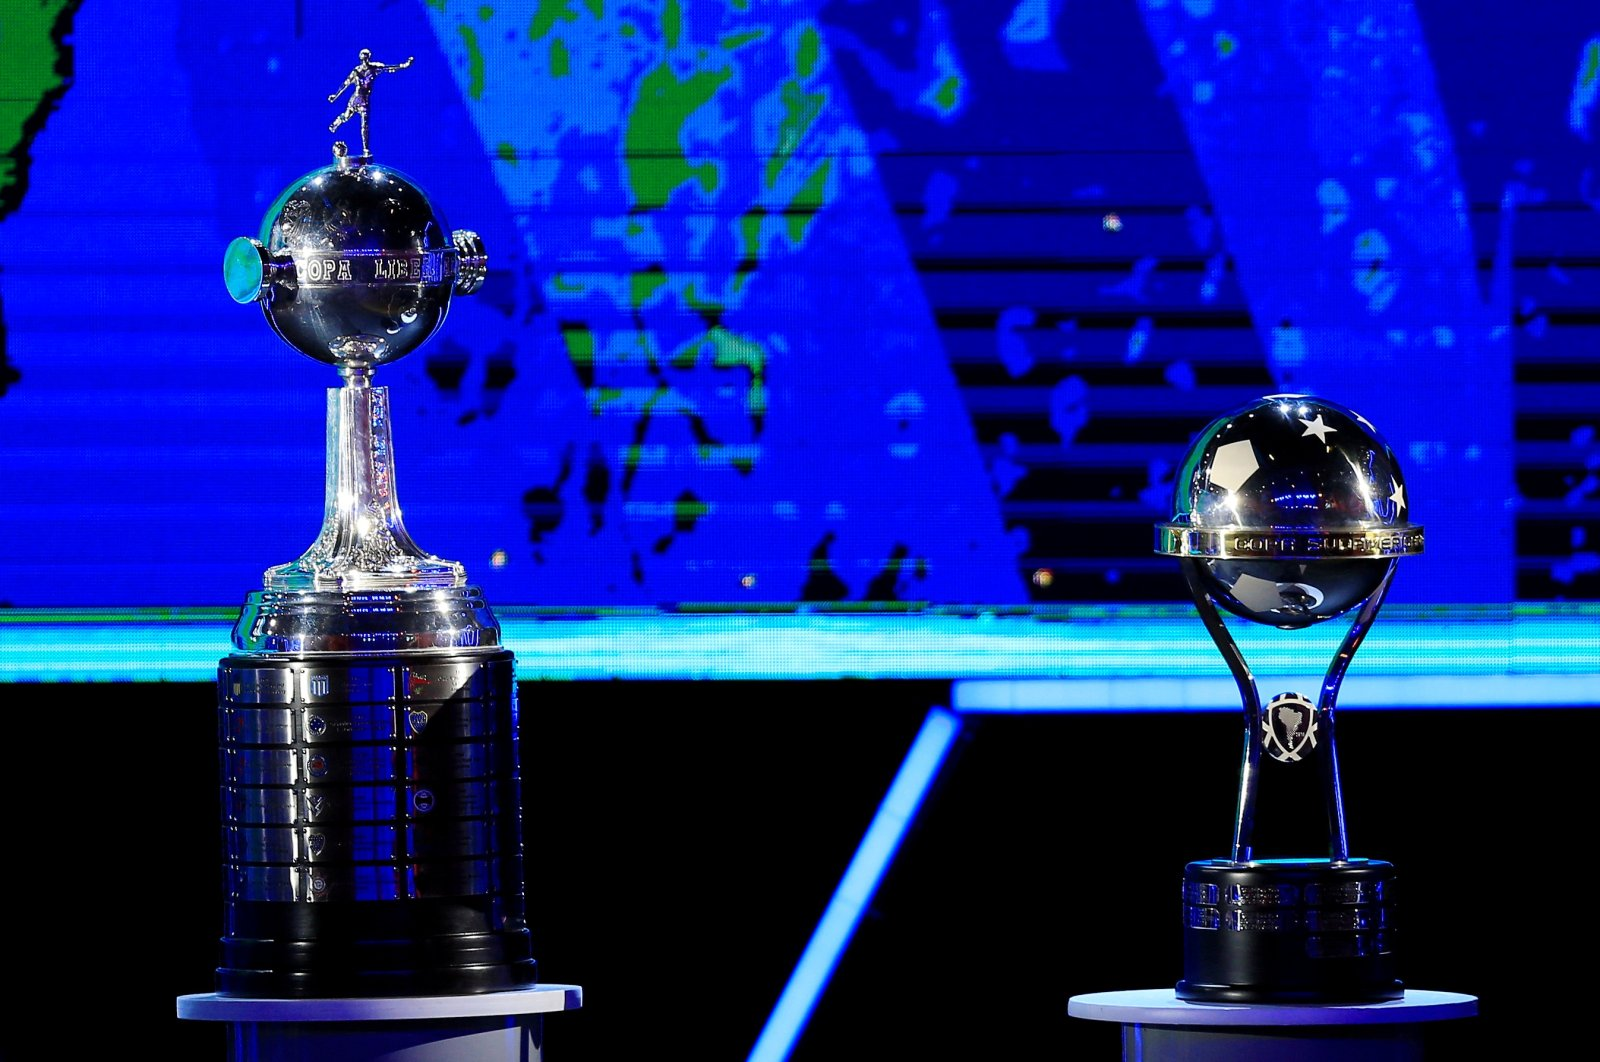 The trophies of the Copa Libertadores and the Copa Sudamericana, in Luque, Paraguay, Dec. 17, 2019. (Reuters Photo)